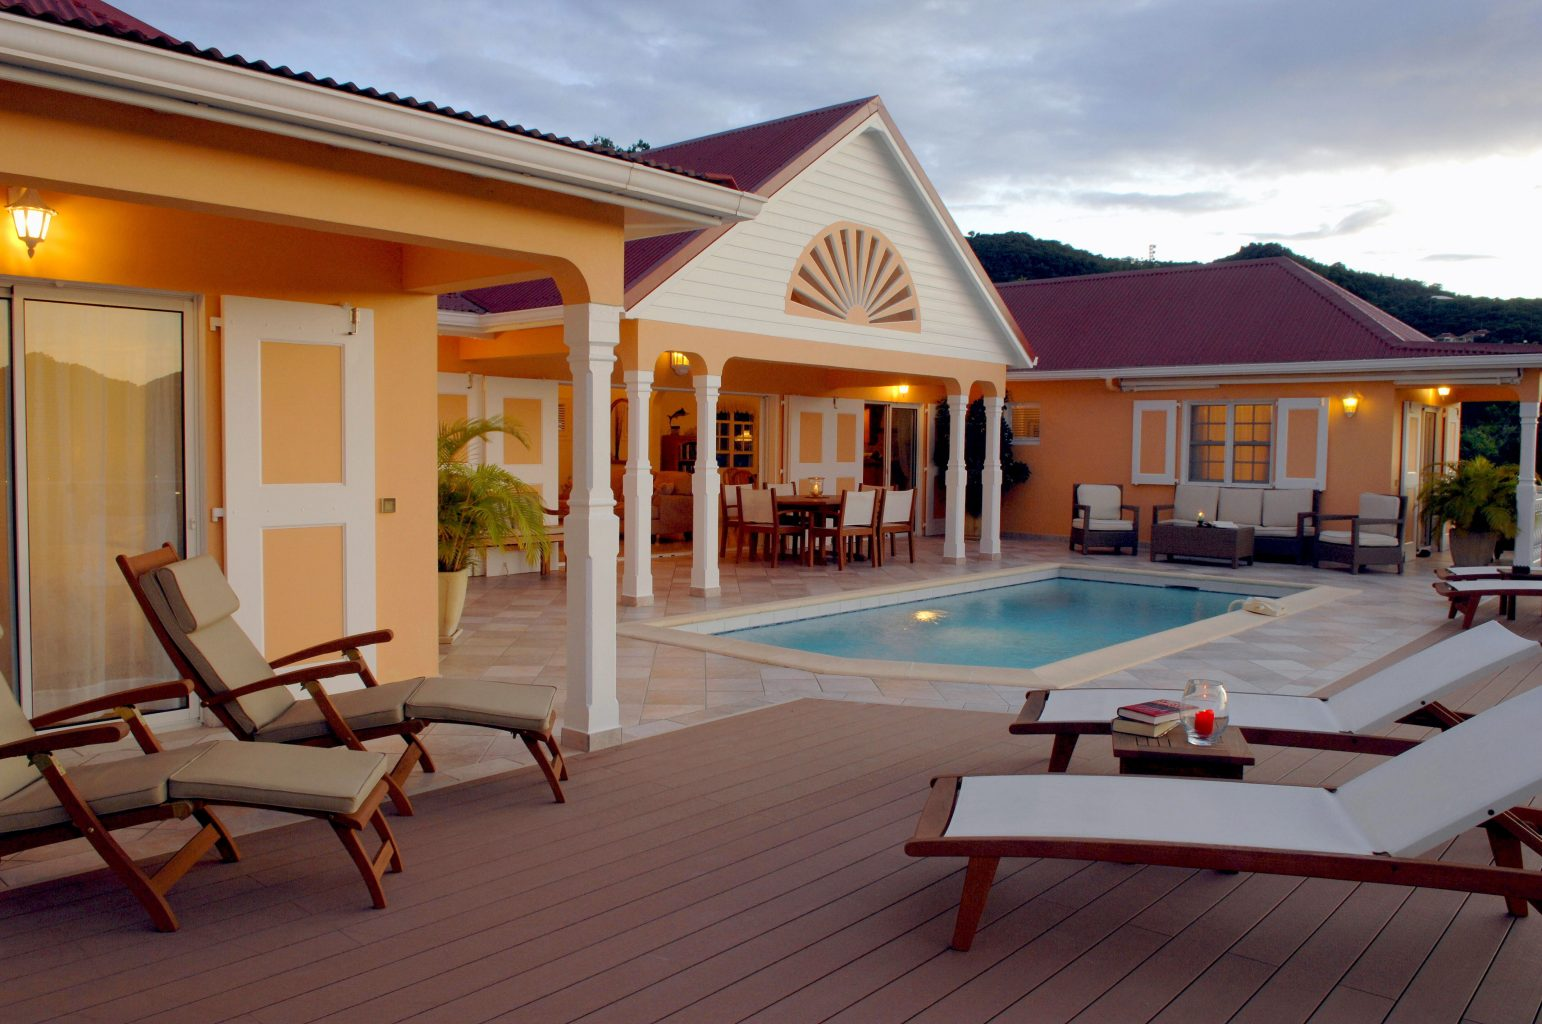 Villa Les Acajous - Seaview Villa for Rent a Short Drive Away from the Beach, Shops and Restaurants - Outside View